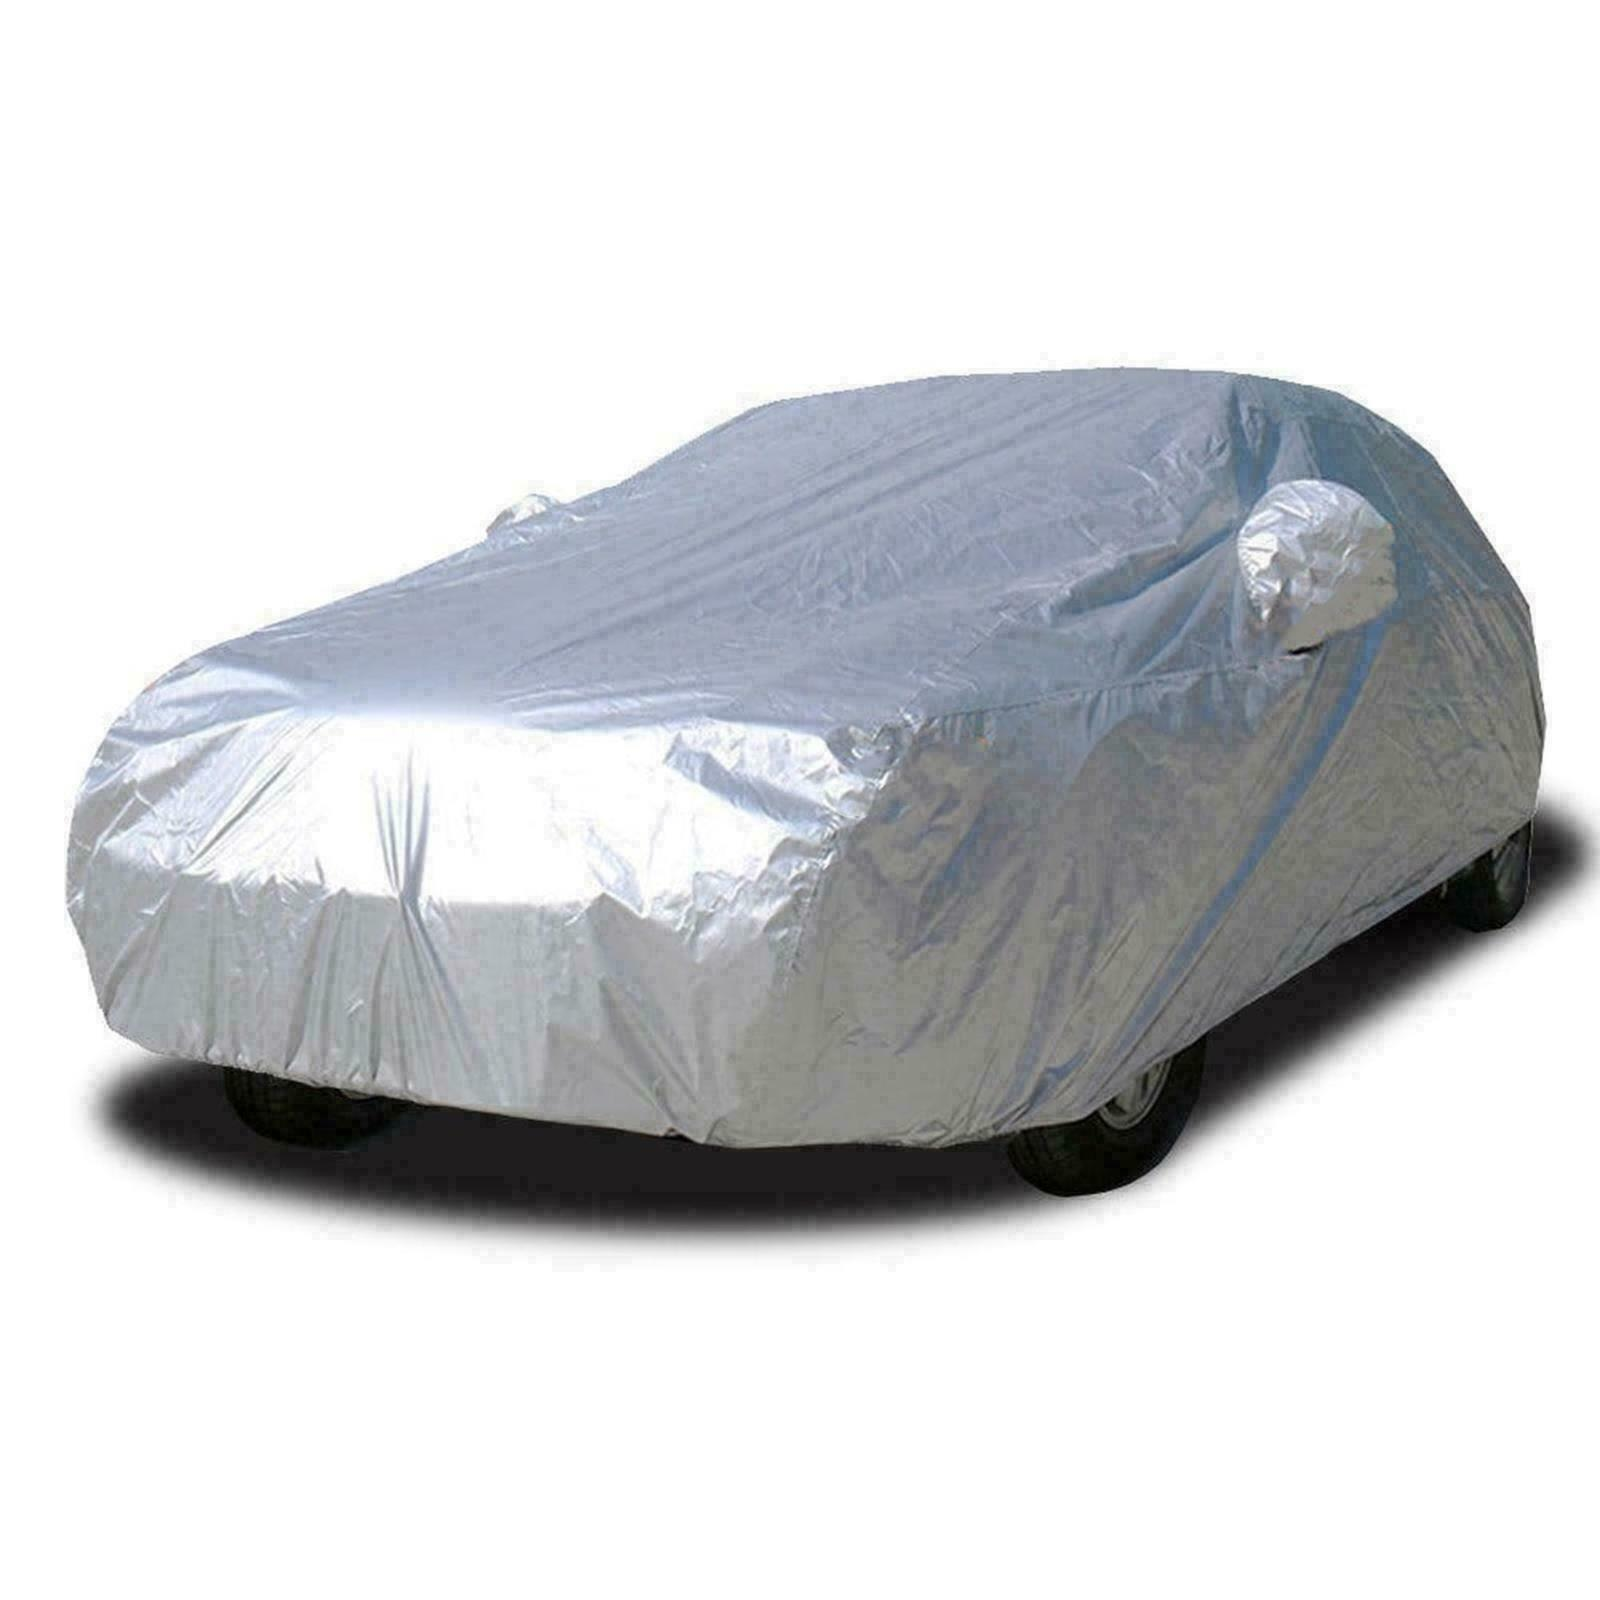 Ozoffer L Car Cover UV Resistance Anti Scratch Dust Dirt Full Protection Au Stock